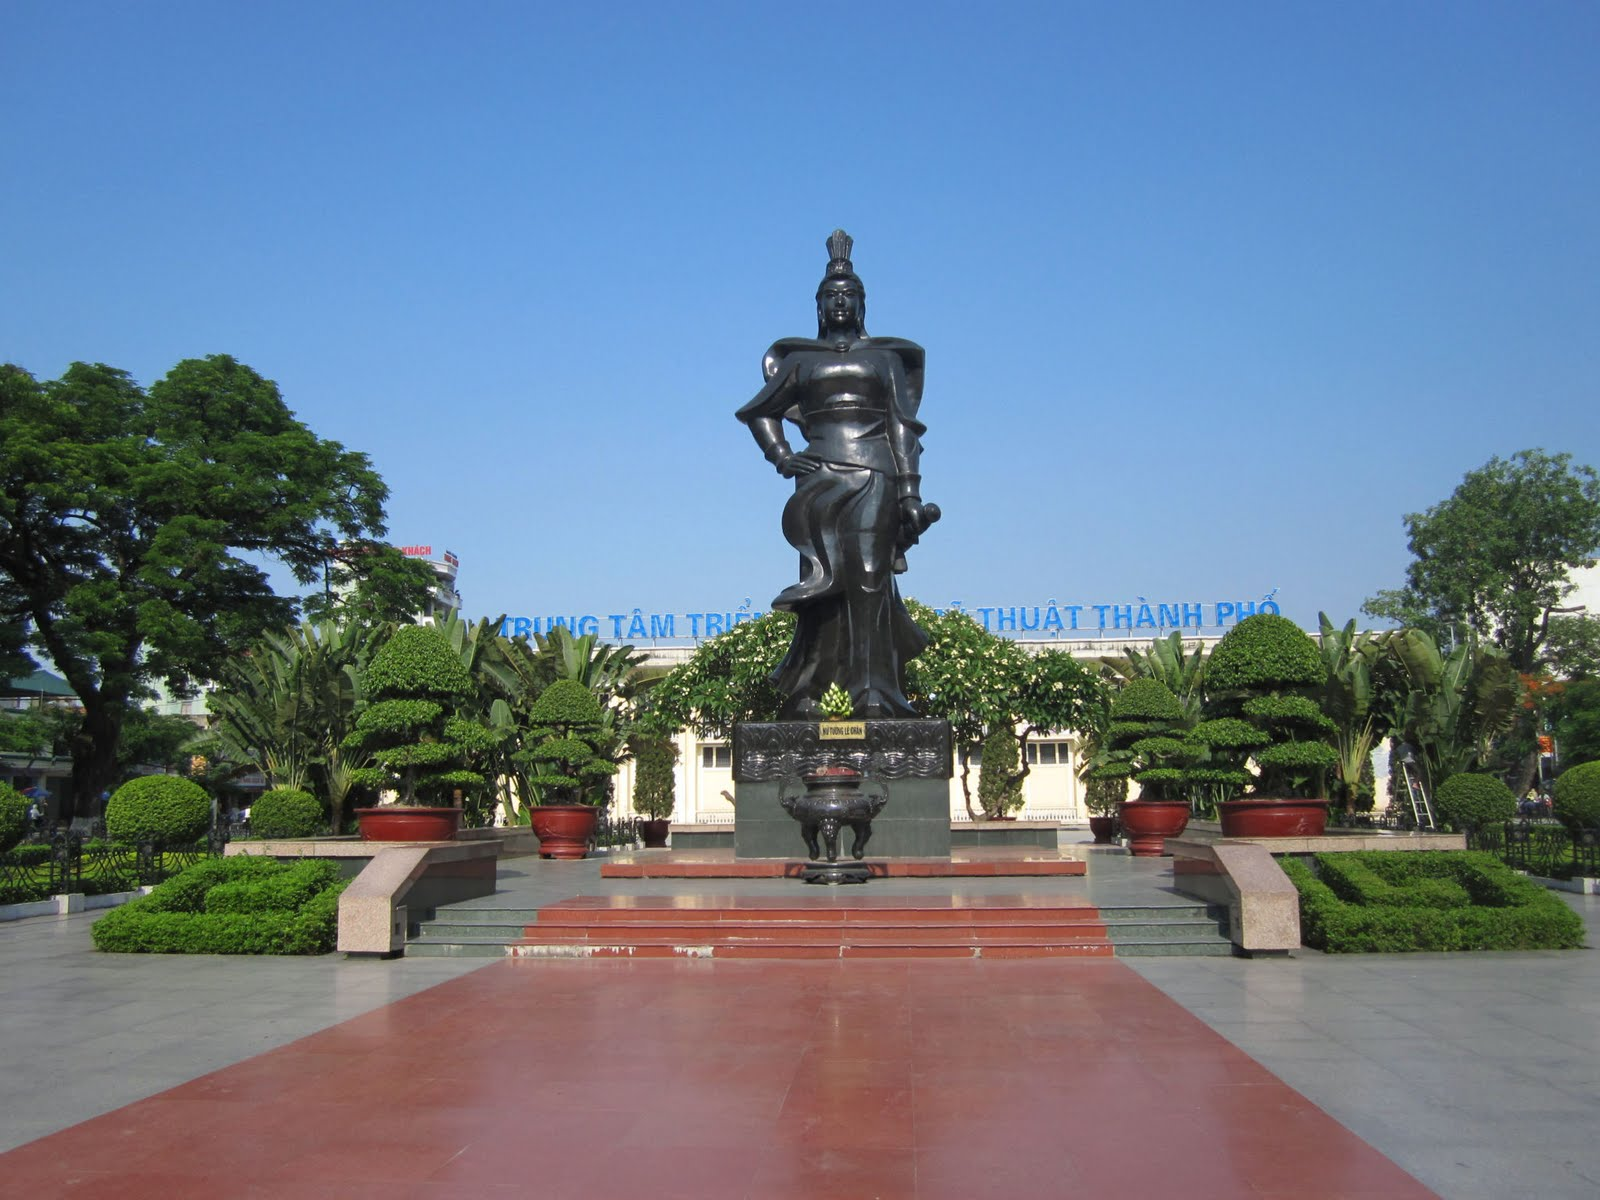 Haiphong Vietnam  City pictures : Haiphong viet nam | Arts et Voyages